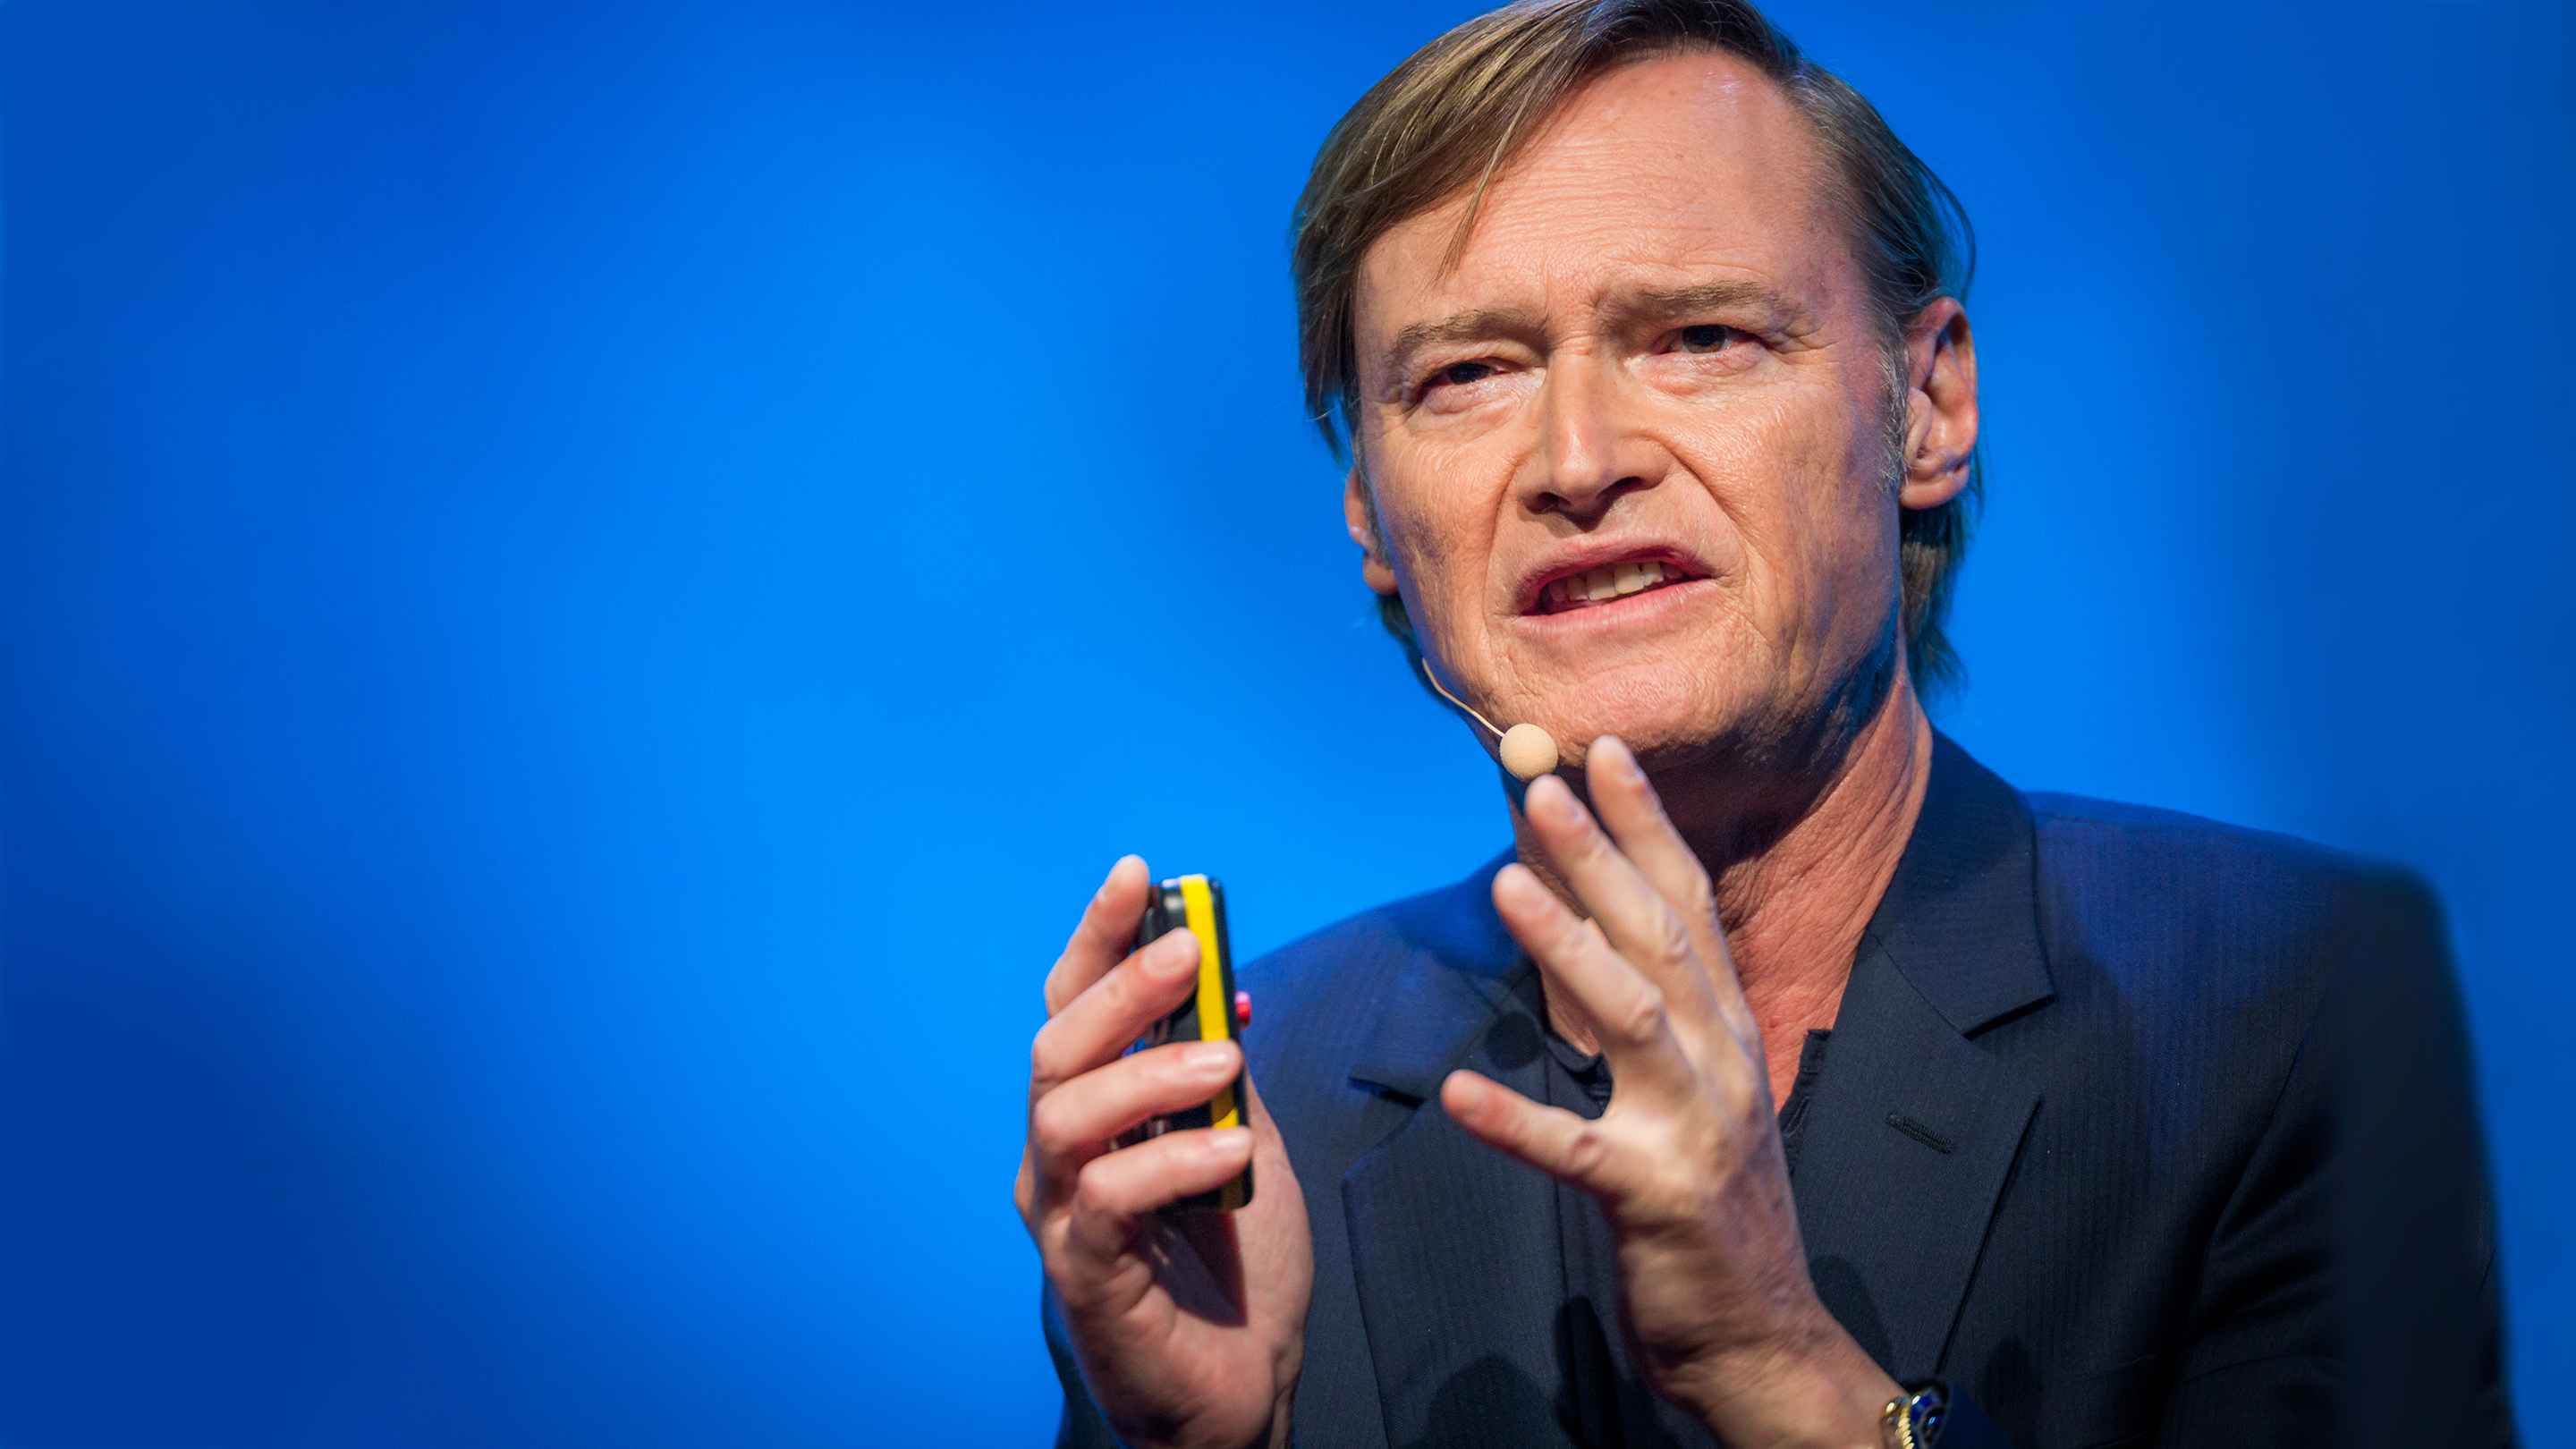 Yves Morieux: How too many rules at work keep you from getting things done thumbnail